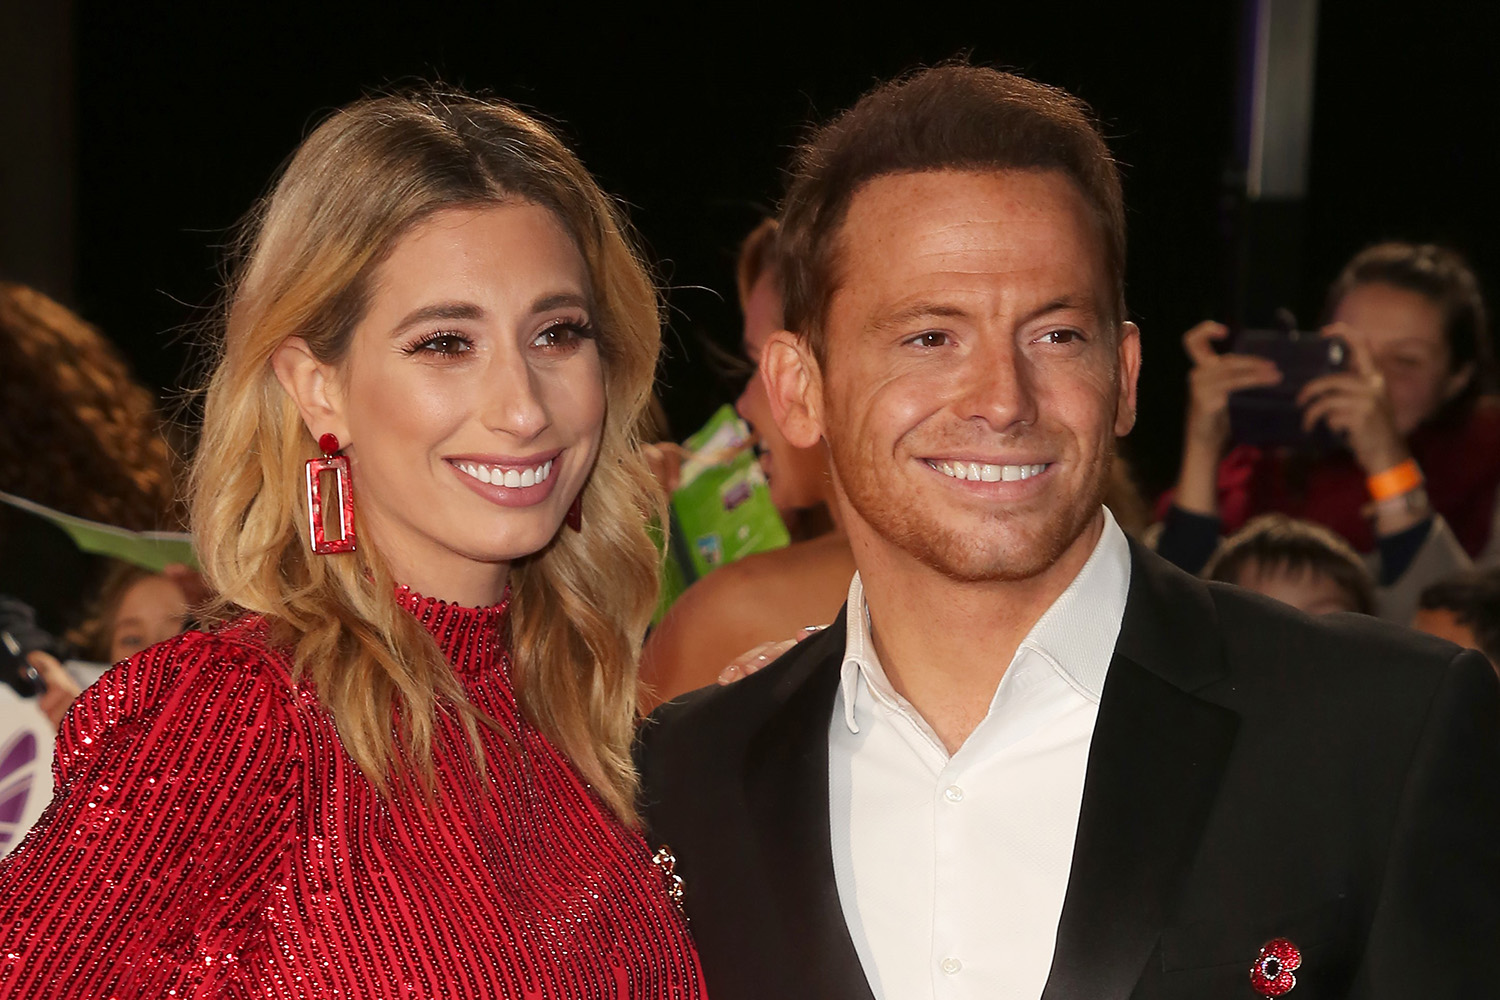 Joe Swash reveals he's bought son Rex a DOG BED to nap in